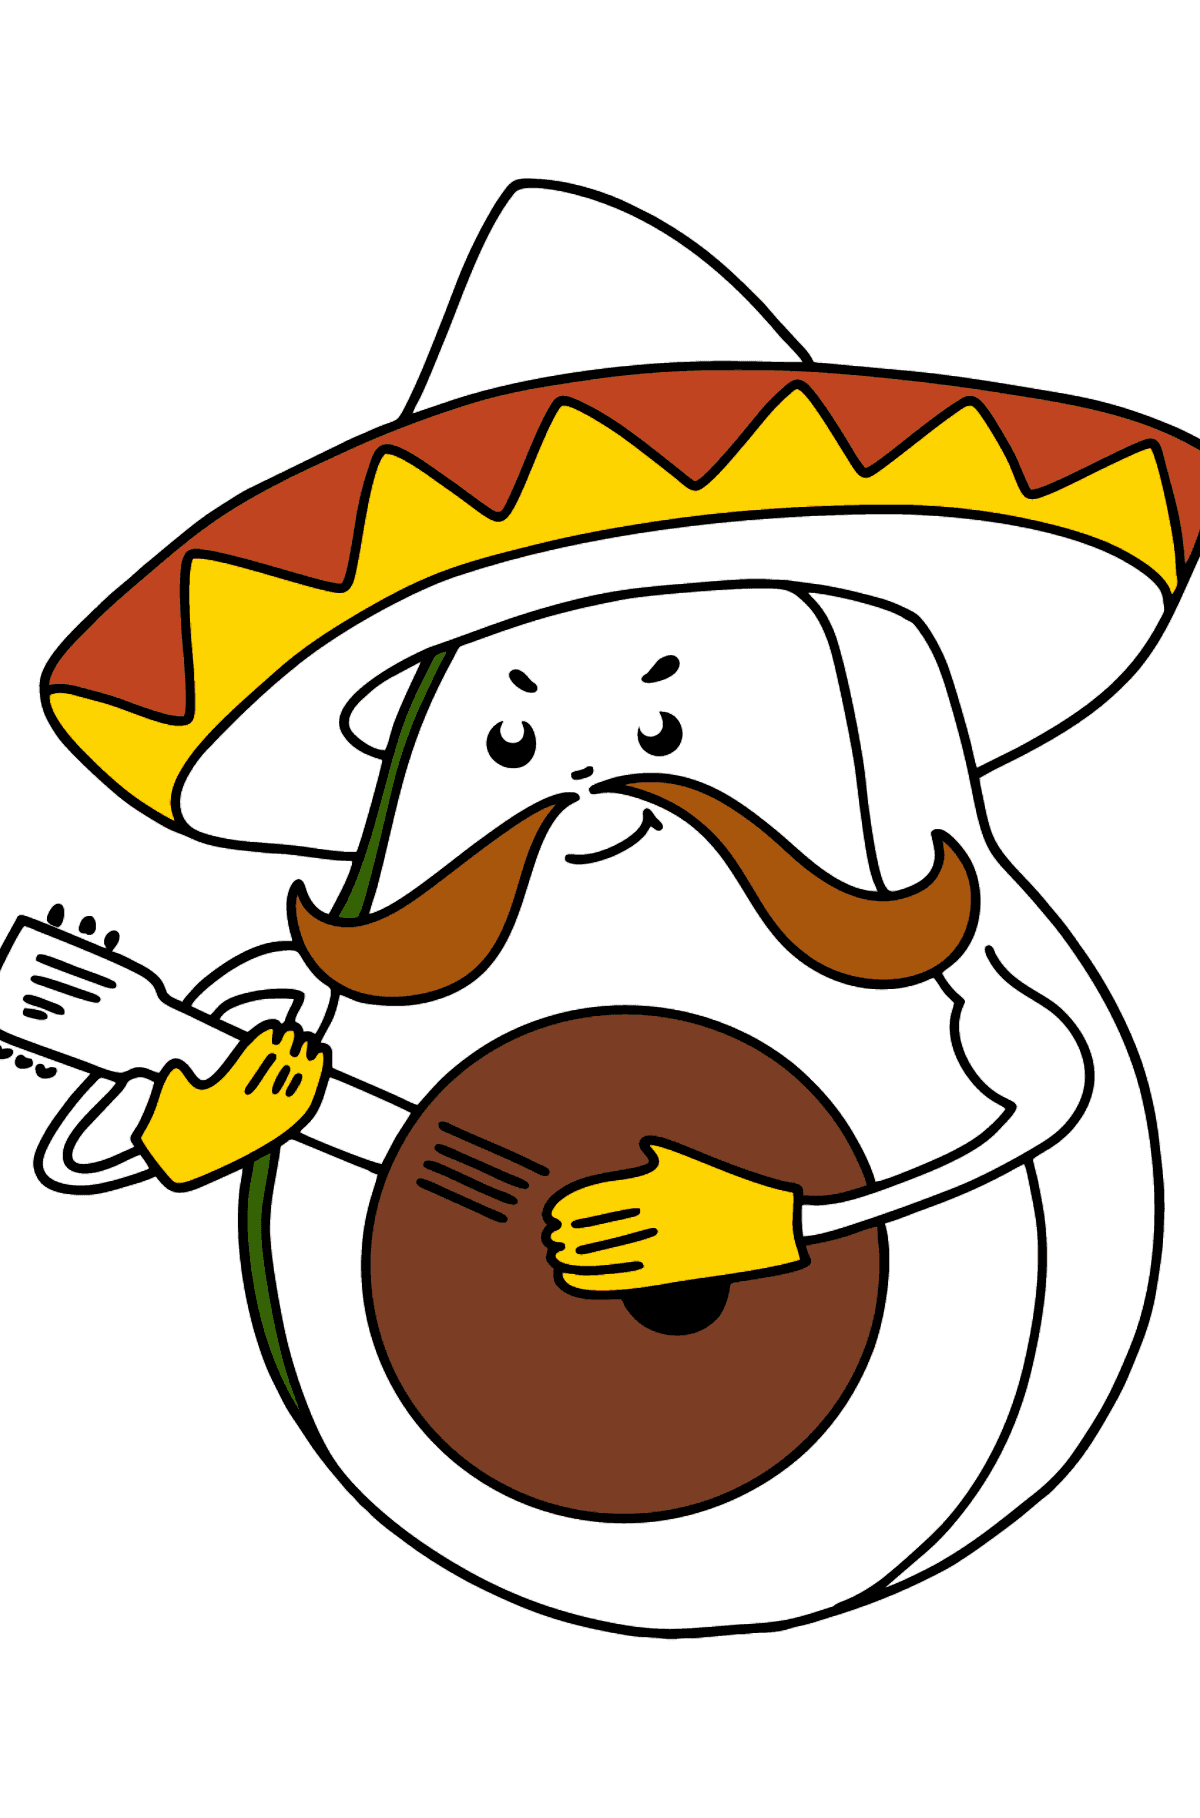 Avocado in Sombrerro coloring page - Coloring Pages for Kids